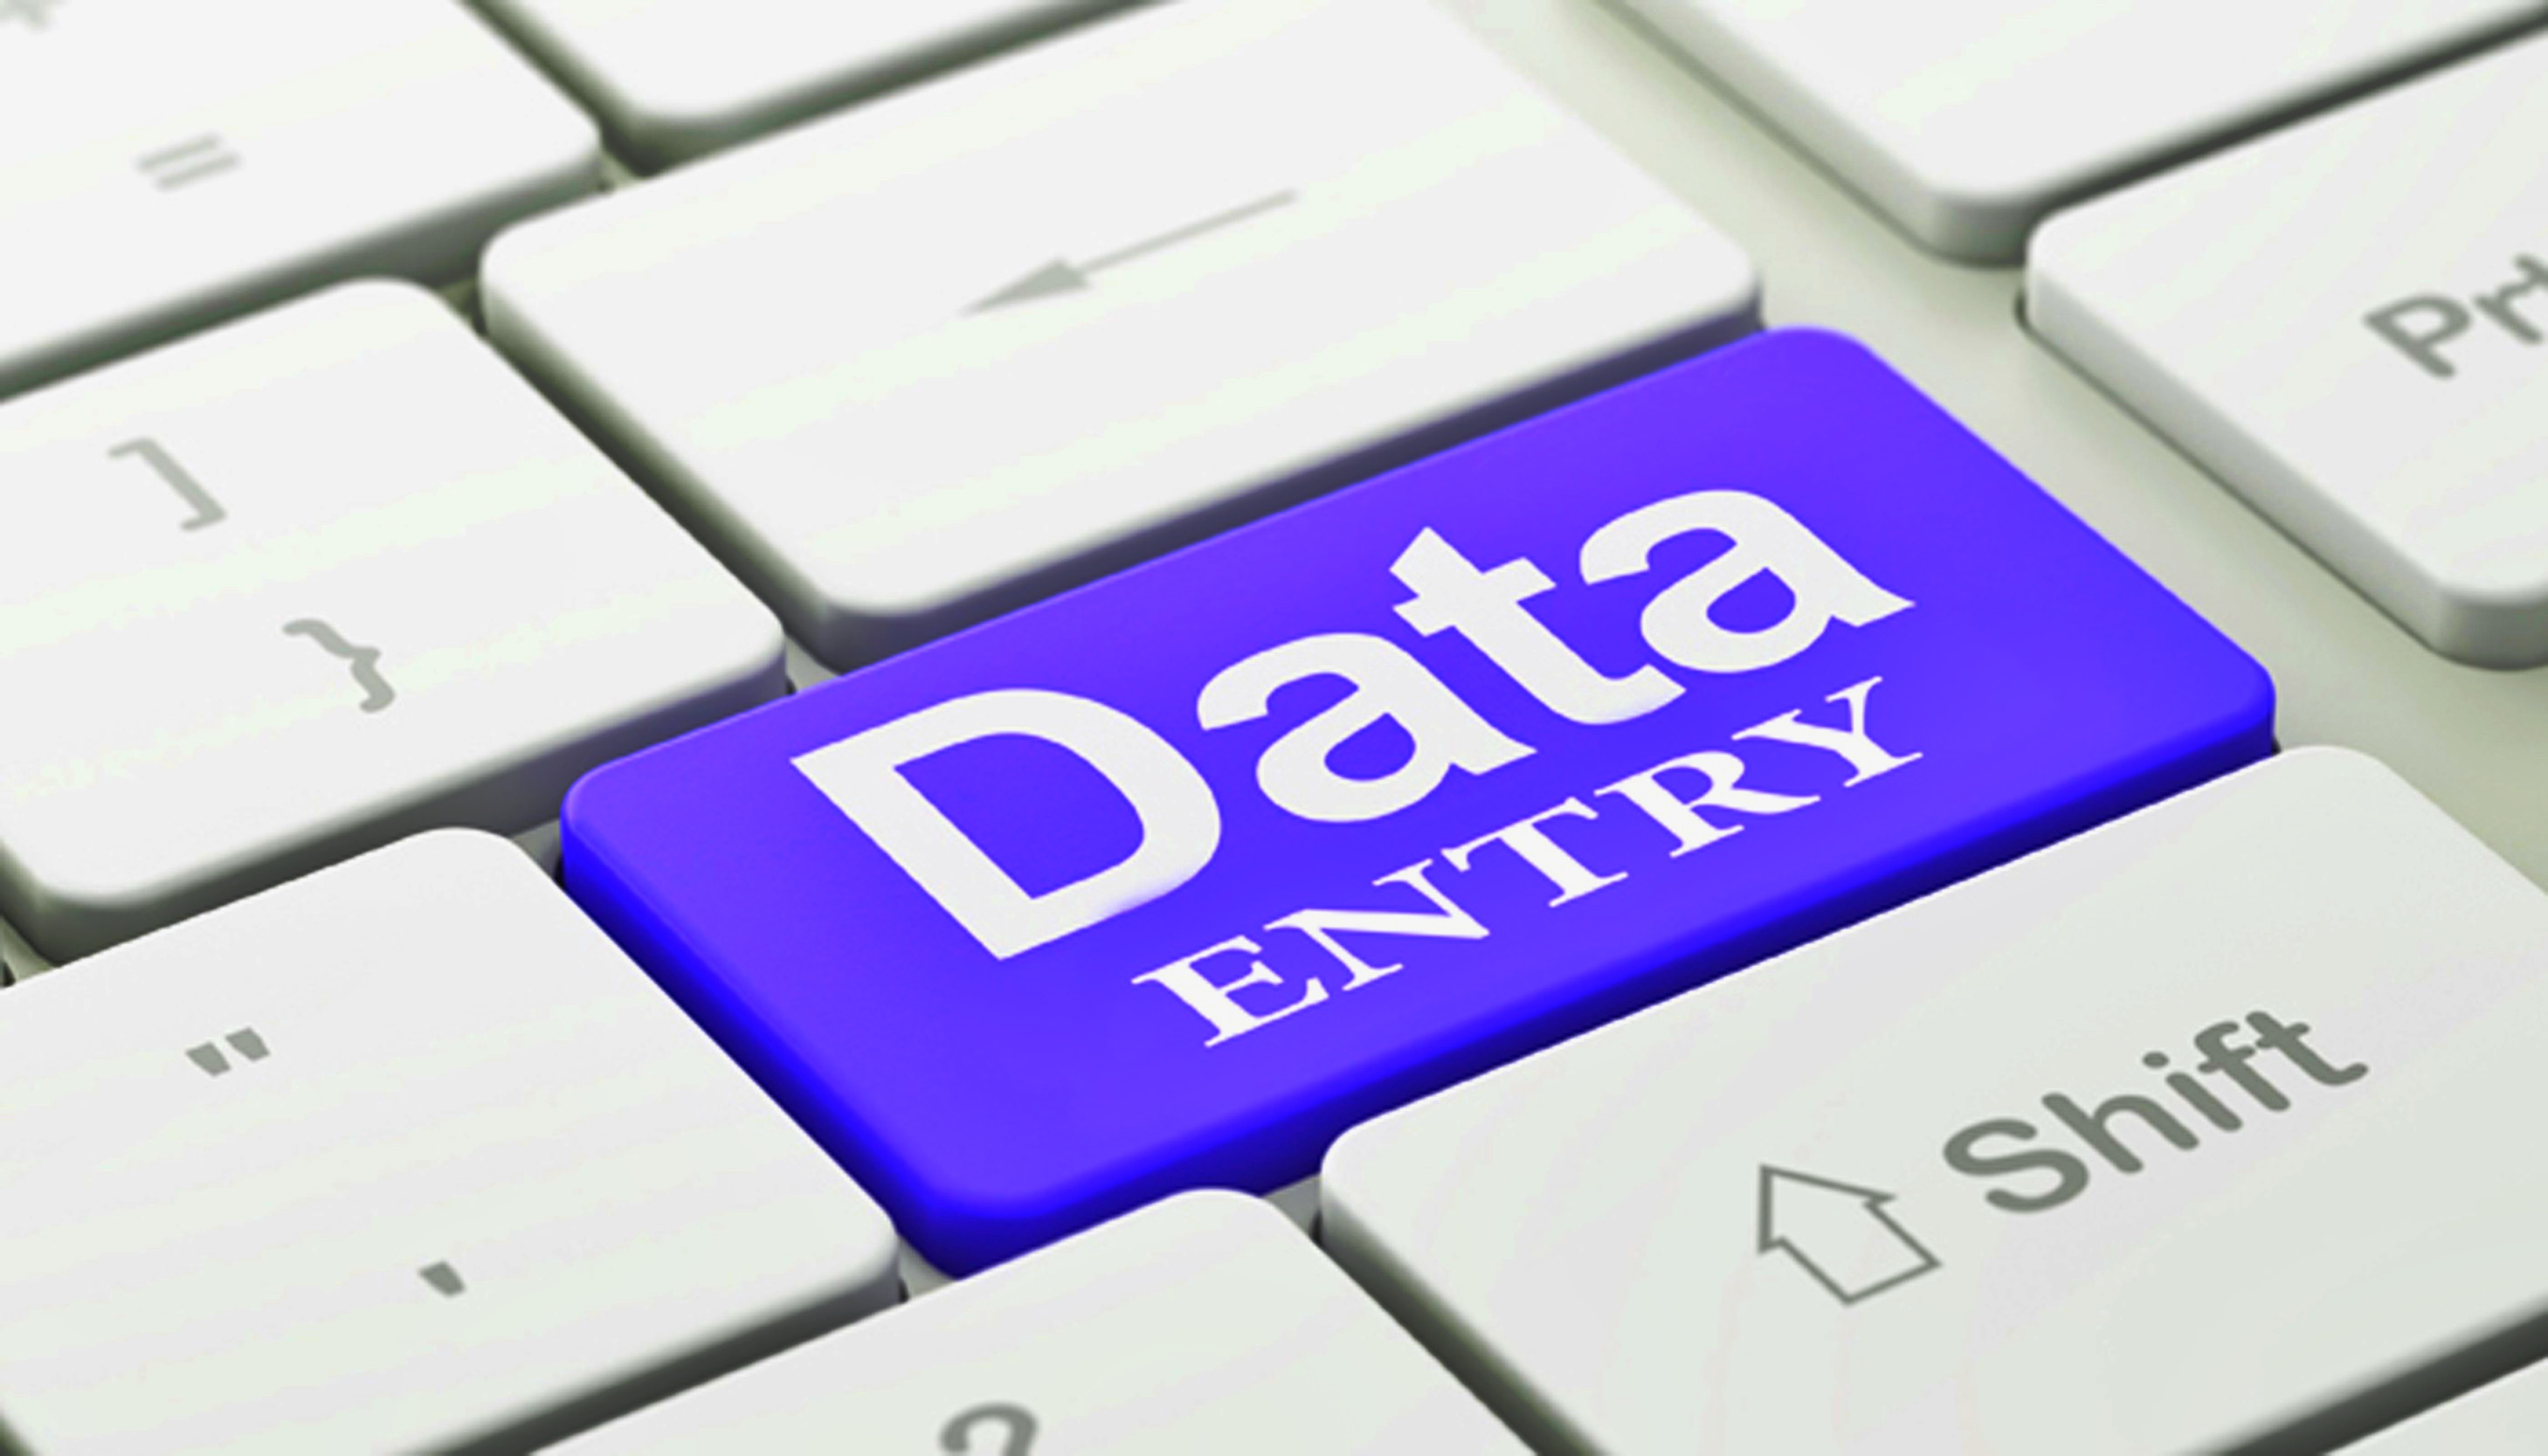 Data entry specialist. I will do data entry for you.